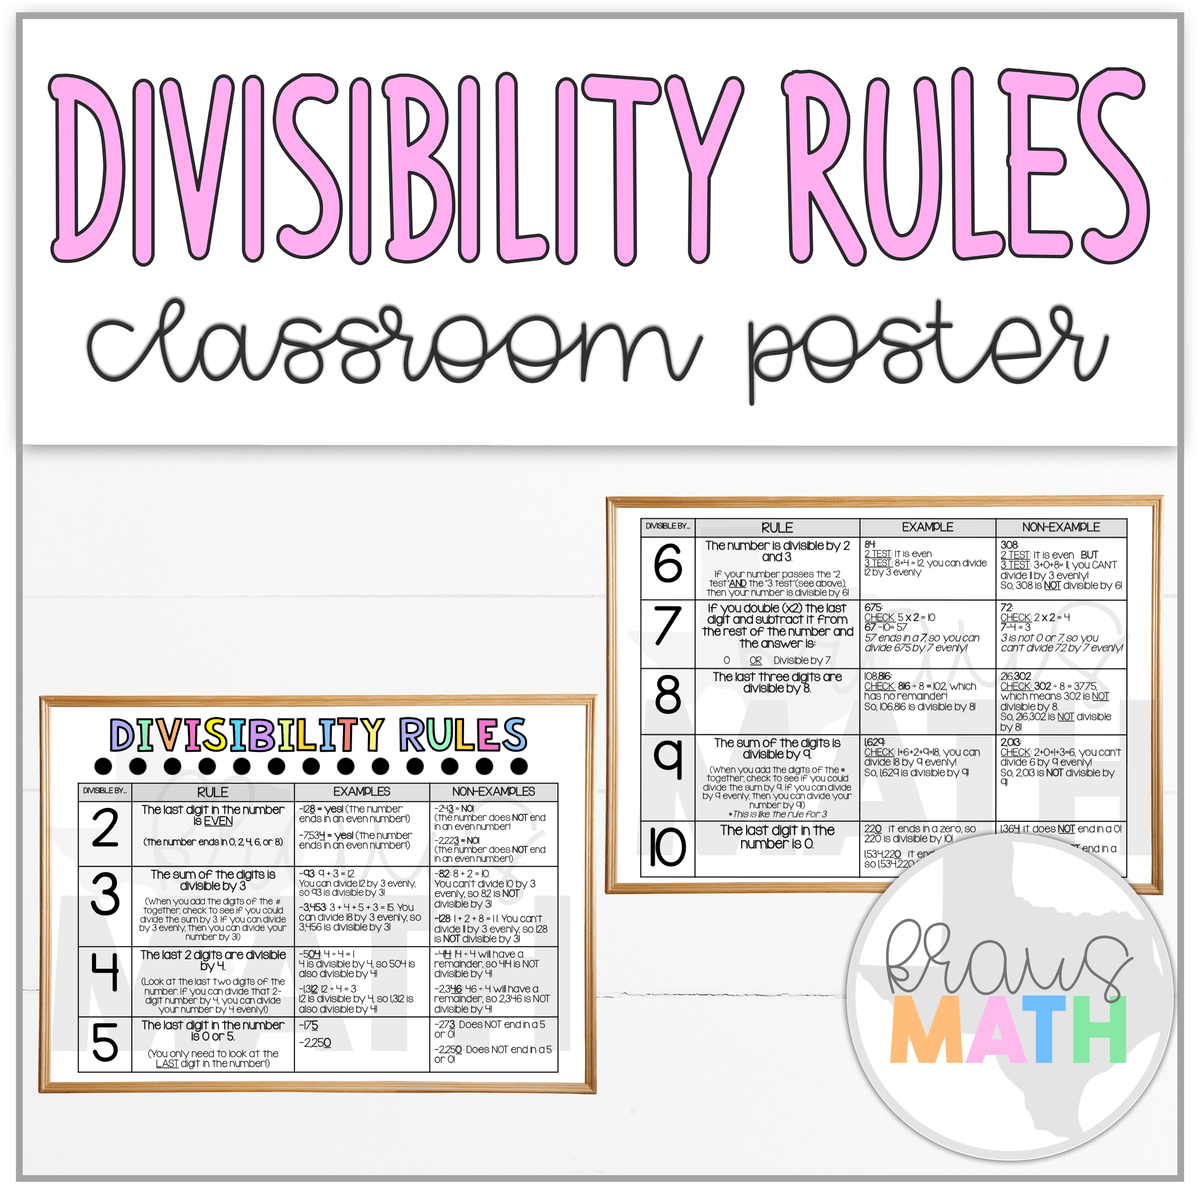 Divisibility Rules Reference Sheet Amp Poster